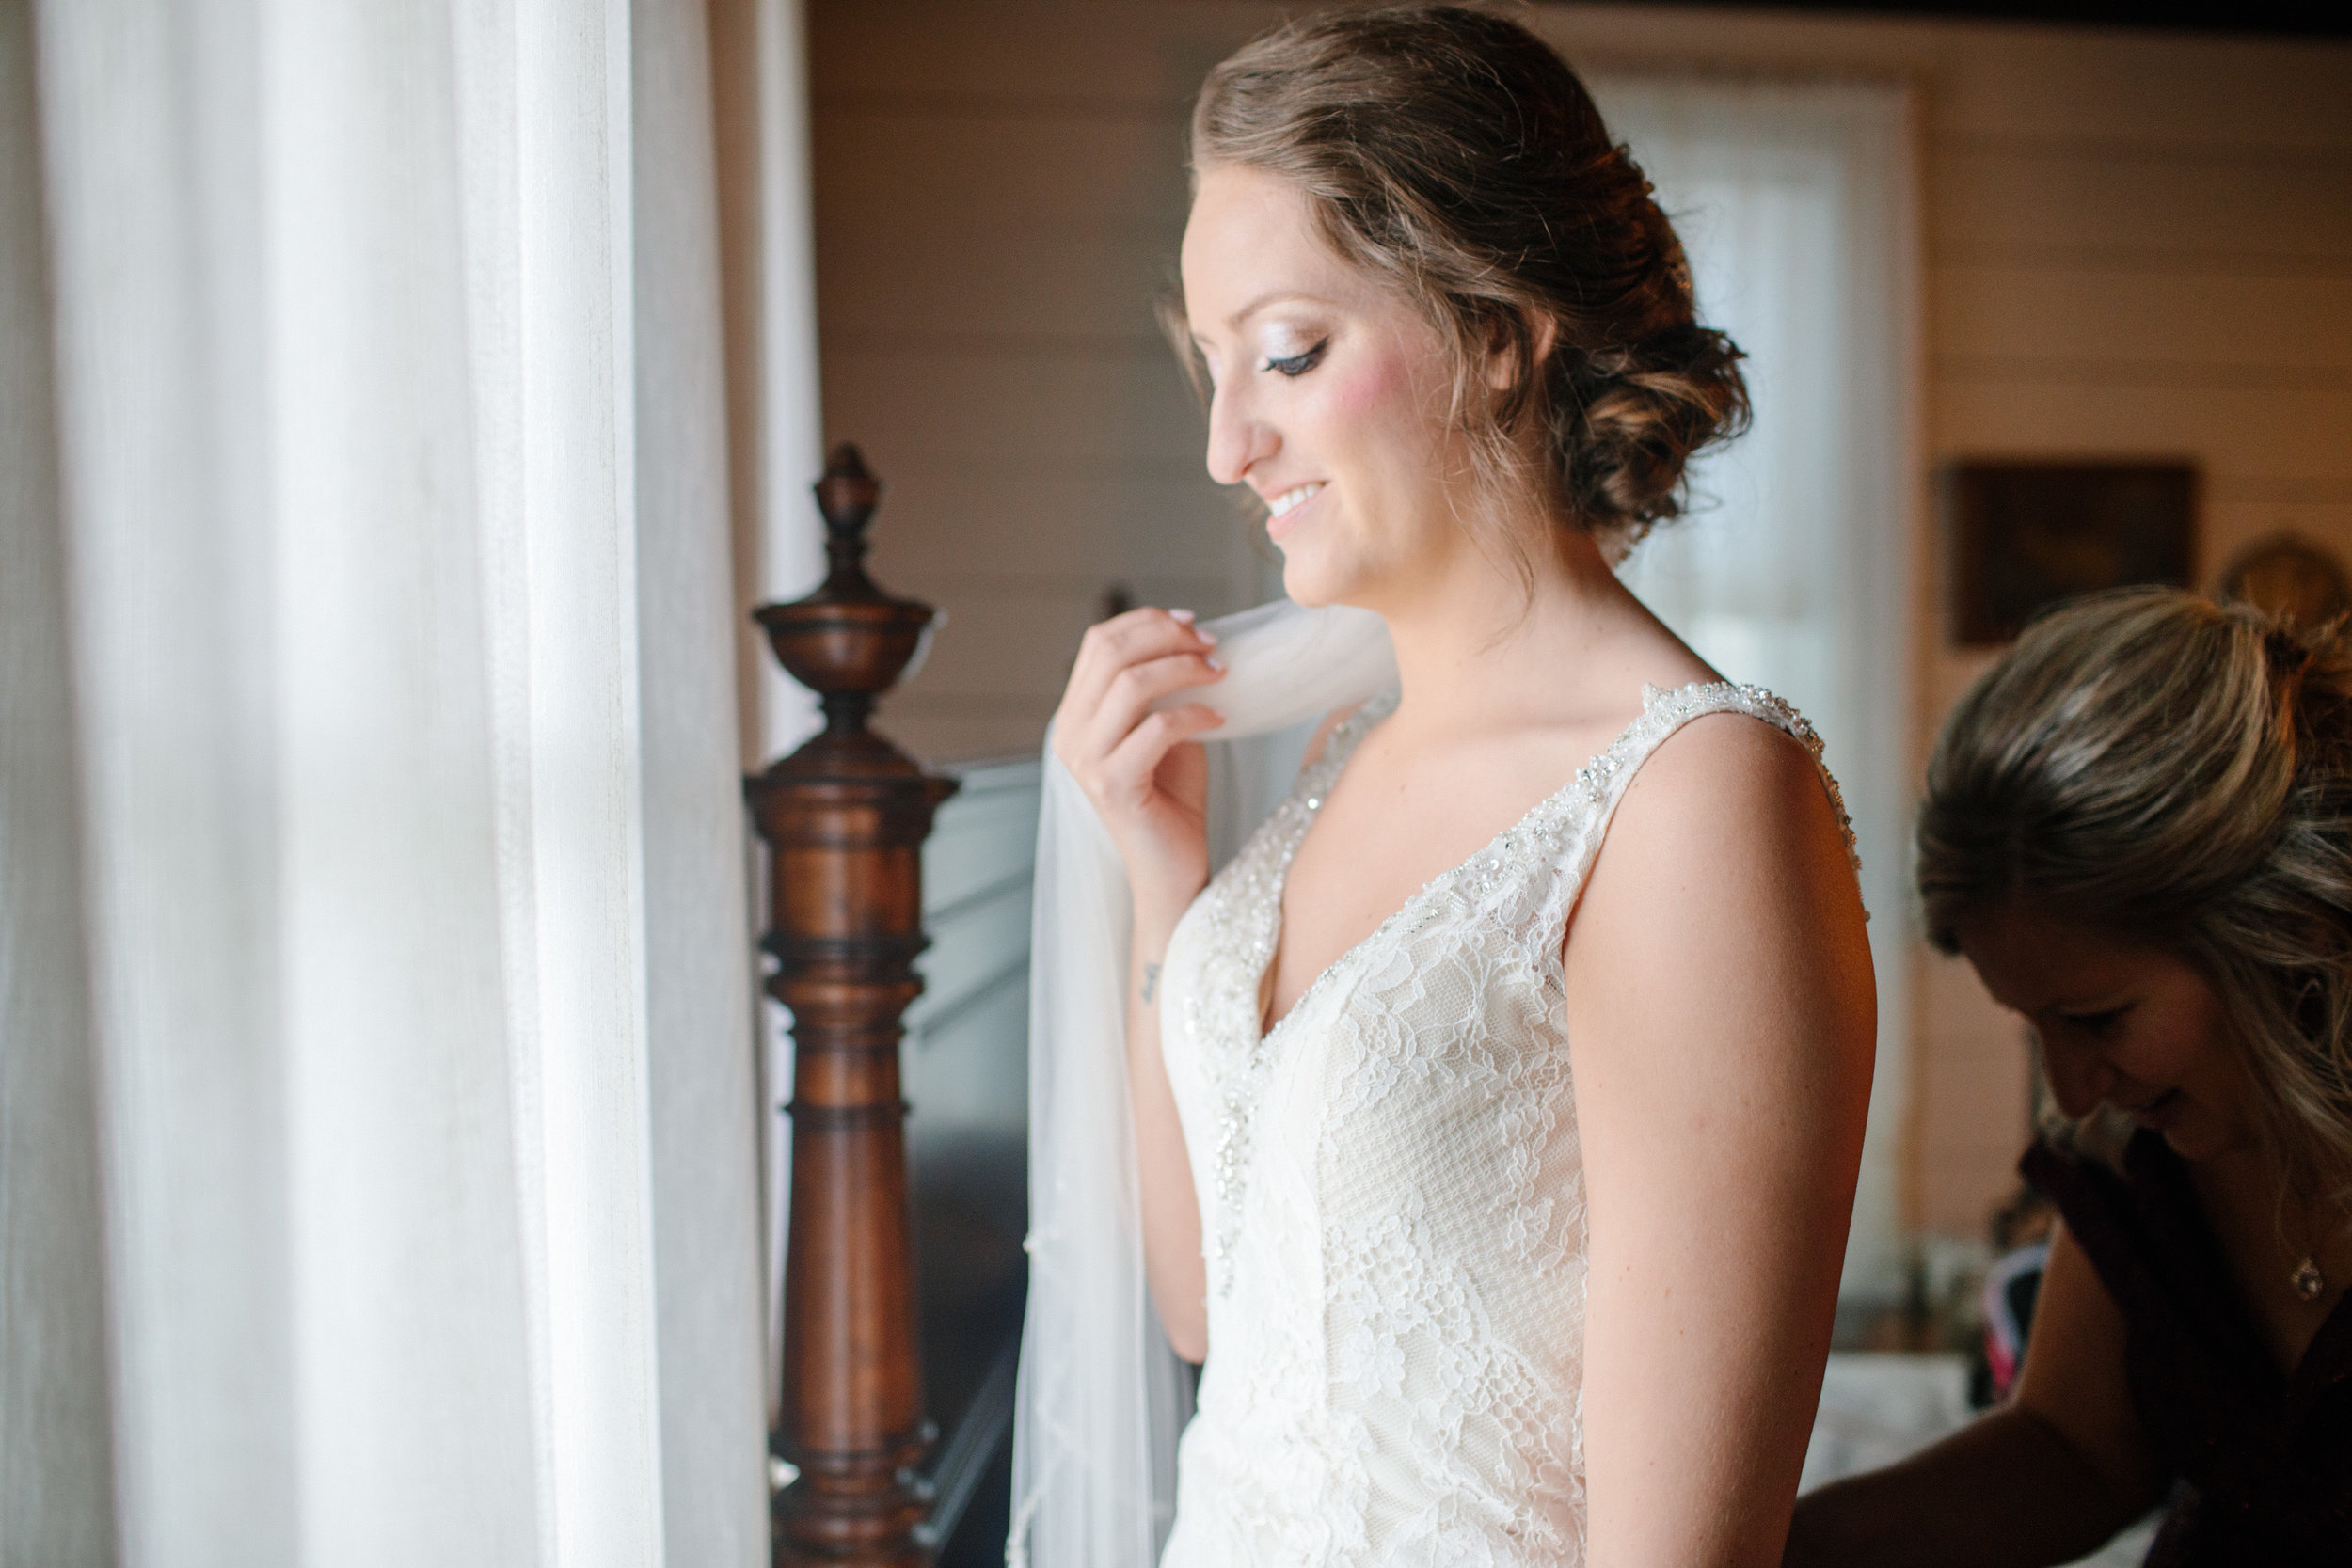 jenna_treye_summer_wedding_pella_photographers_09.jpg